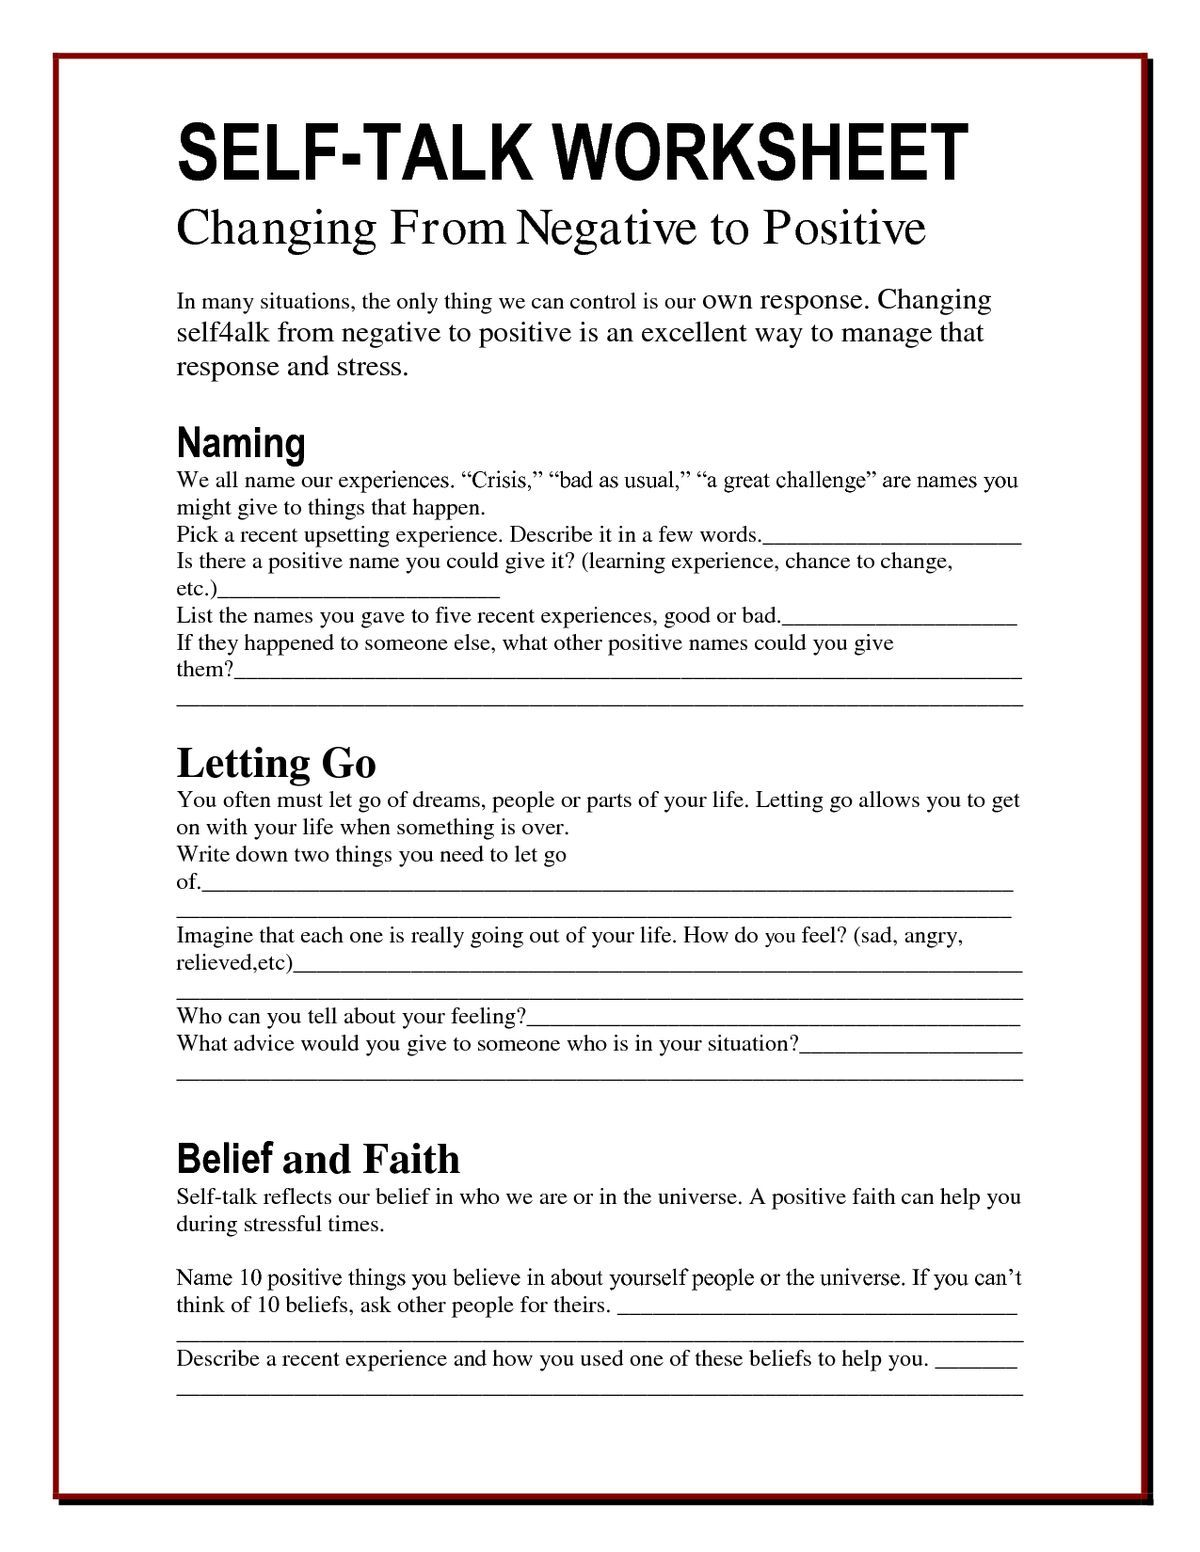 Worksheets Self Worth Worksheets anger worksheets google search positive thinking pinterest the worry bag self talk worksheet archives healing path with childrenteens